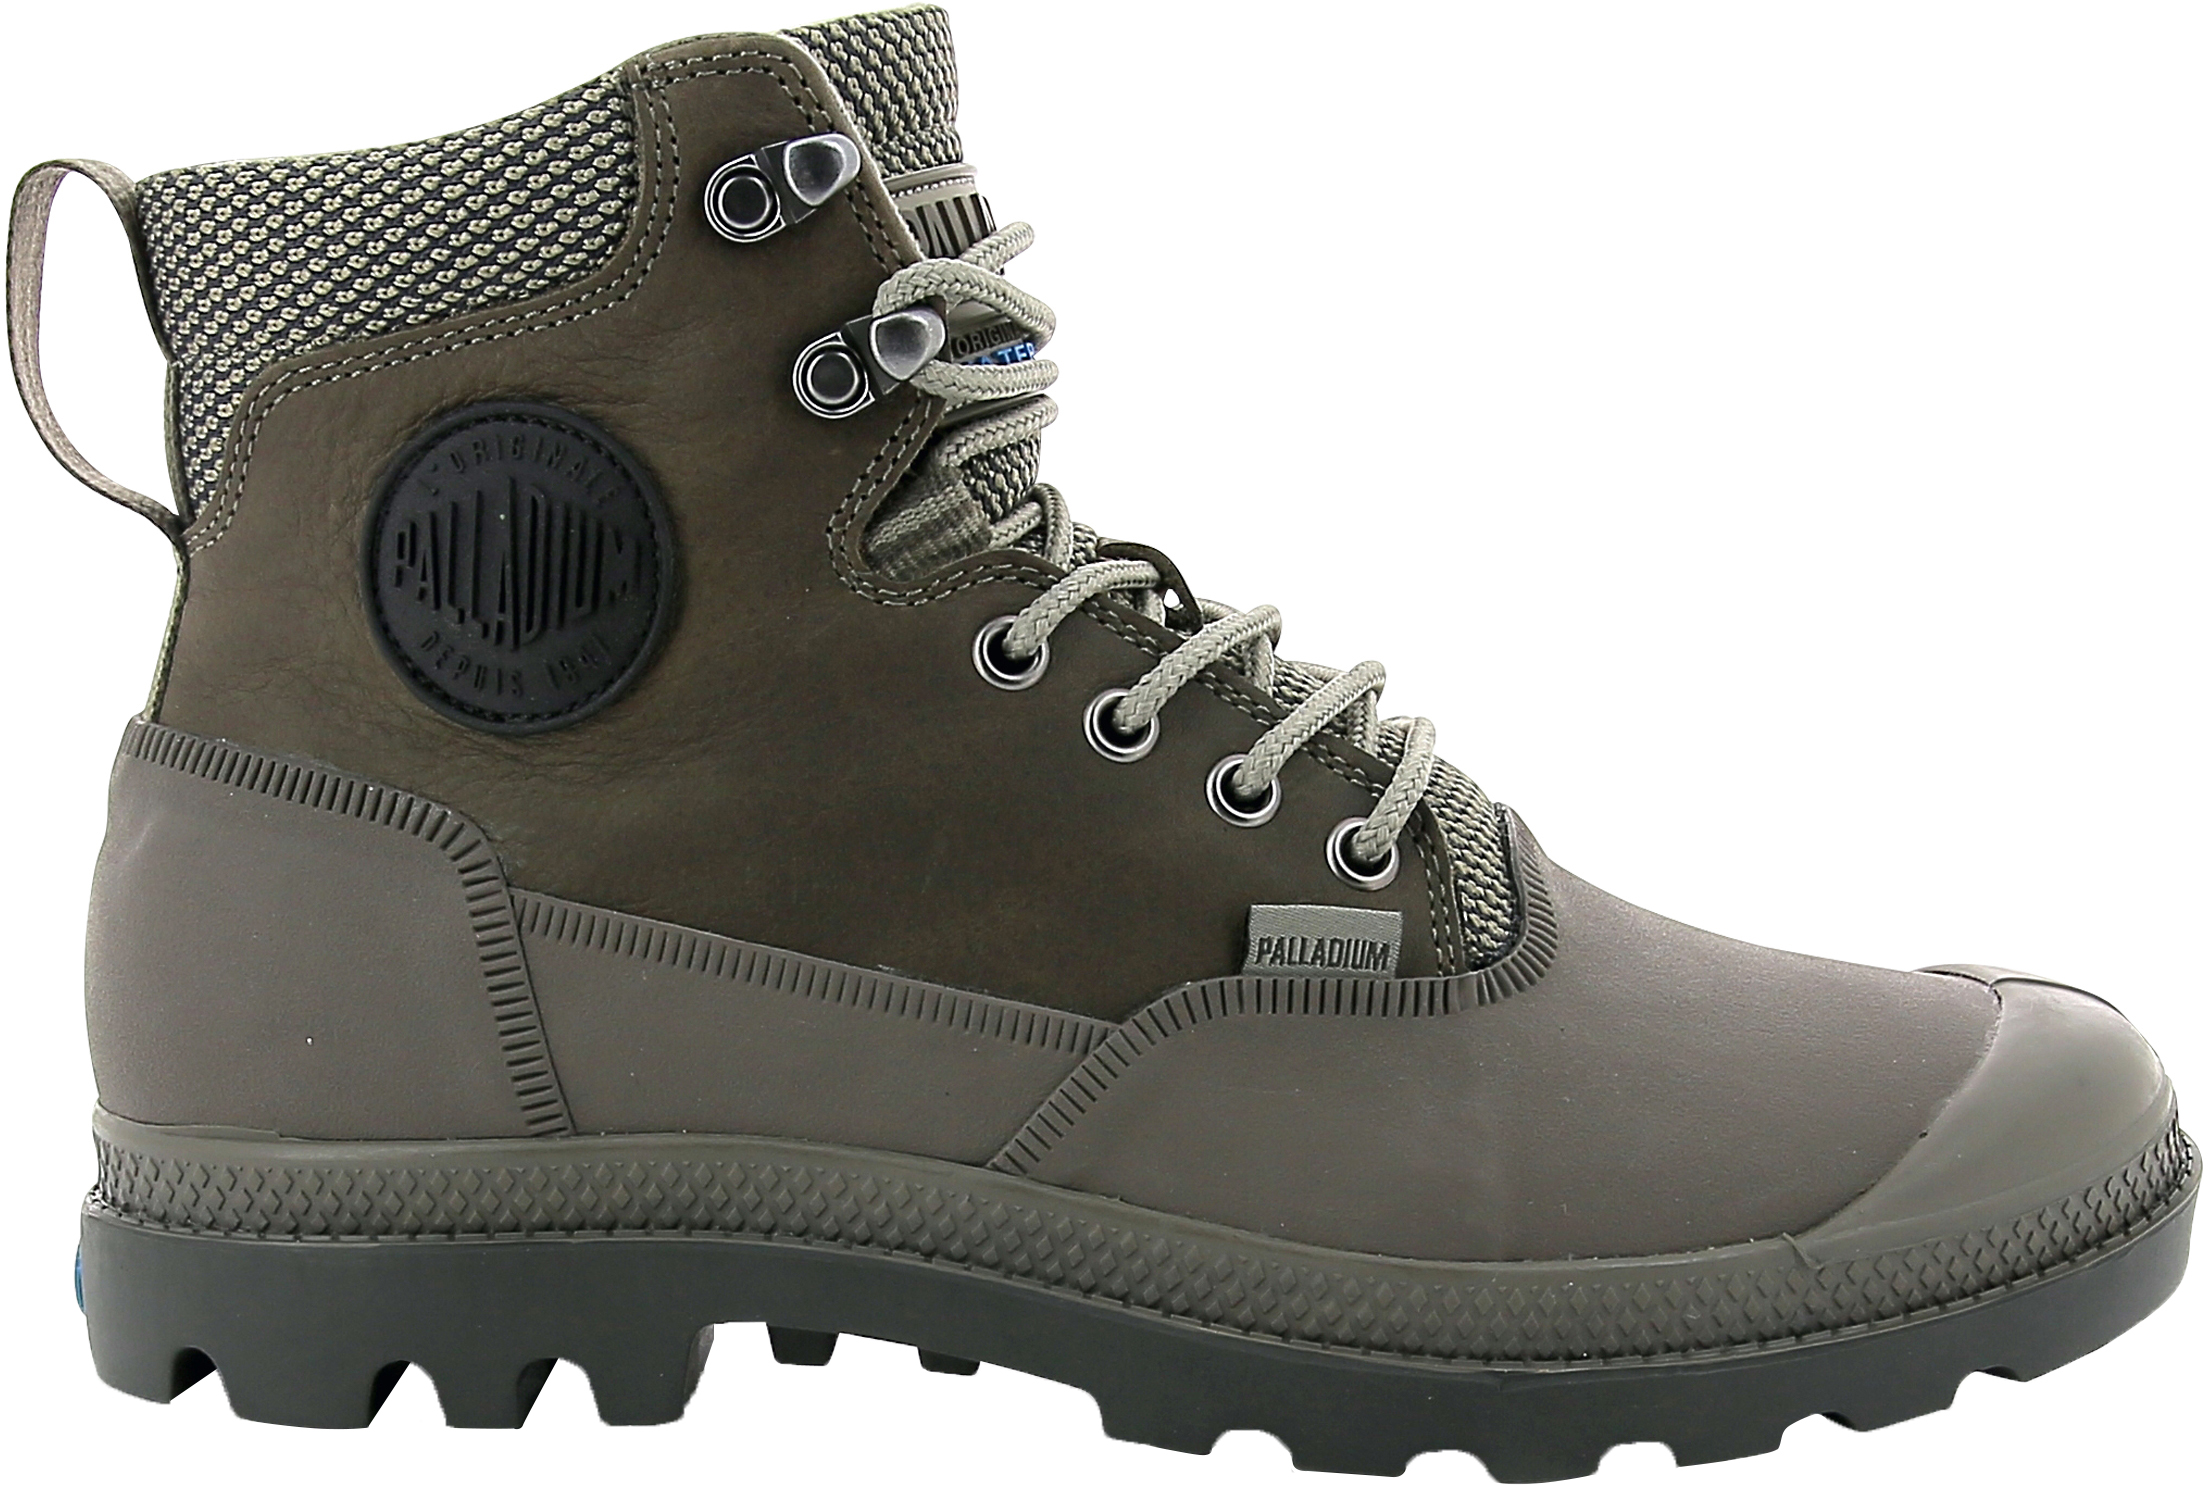 d74d2dbf081 Palladium Sport Cuff Waterproof 2.0 Boots - Men's